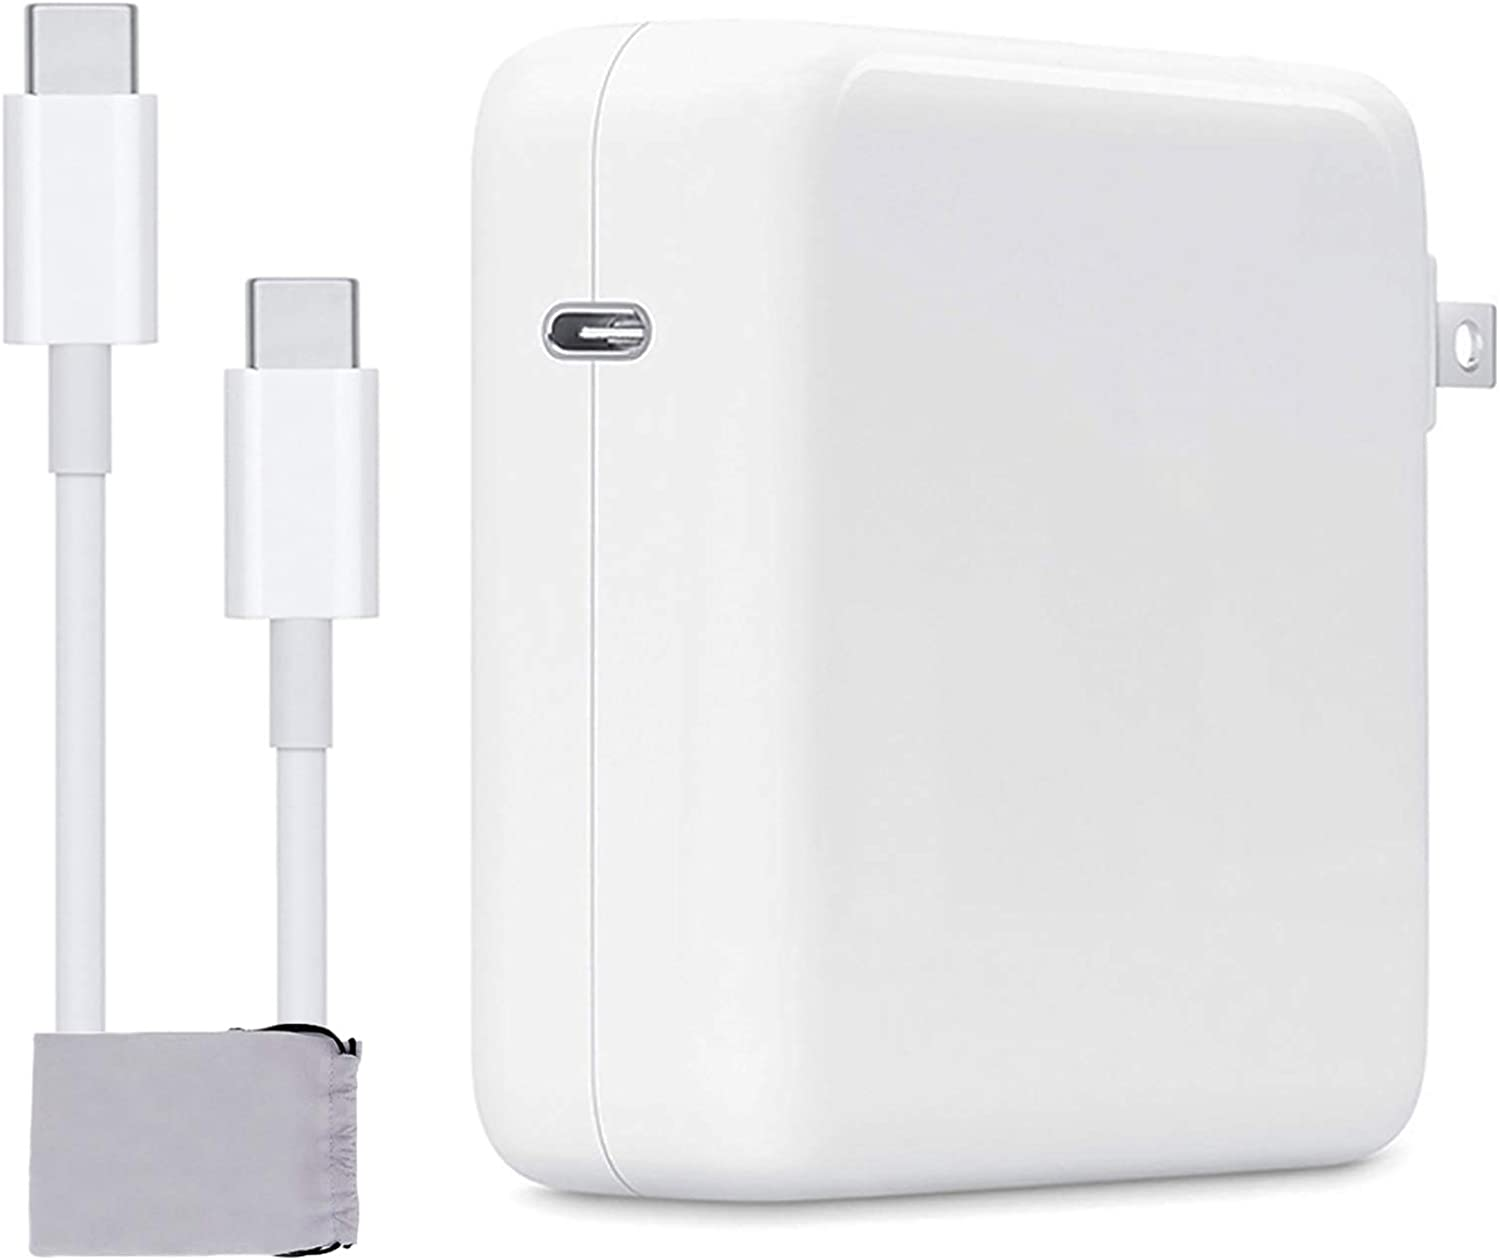 Mac Book Pro Charger, 61W USB C Charger Power Adapter Compatible with MacBook Pro 13 Inch 2020 MacBook Air 13 Inch iPad Pro 2019 2018 Include Charge Cable